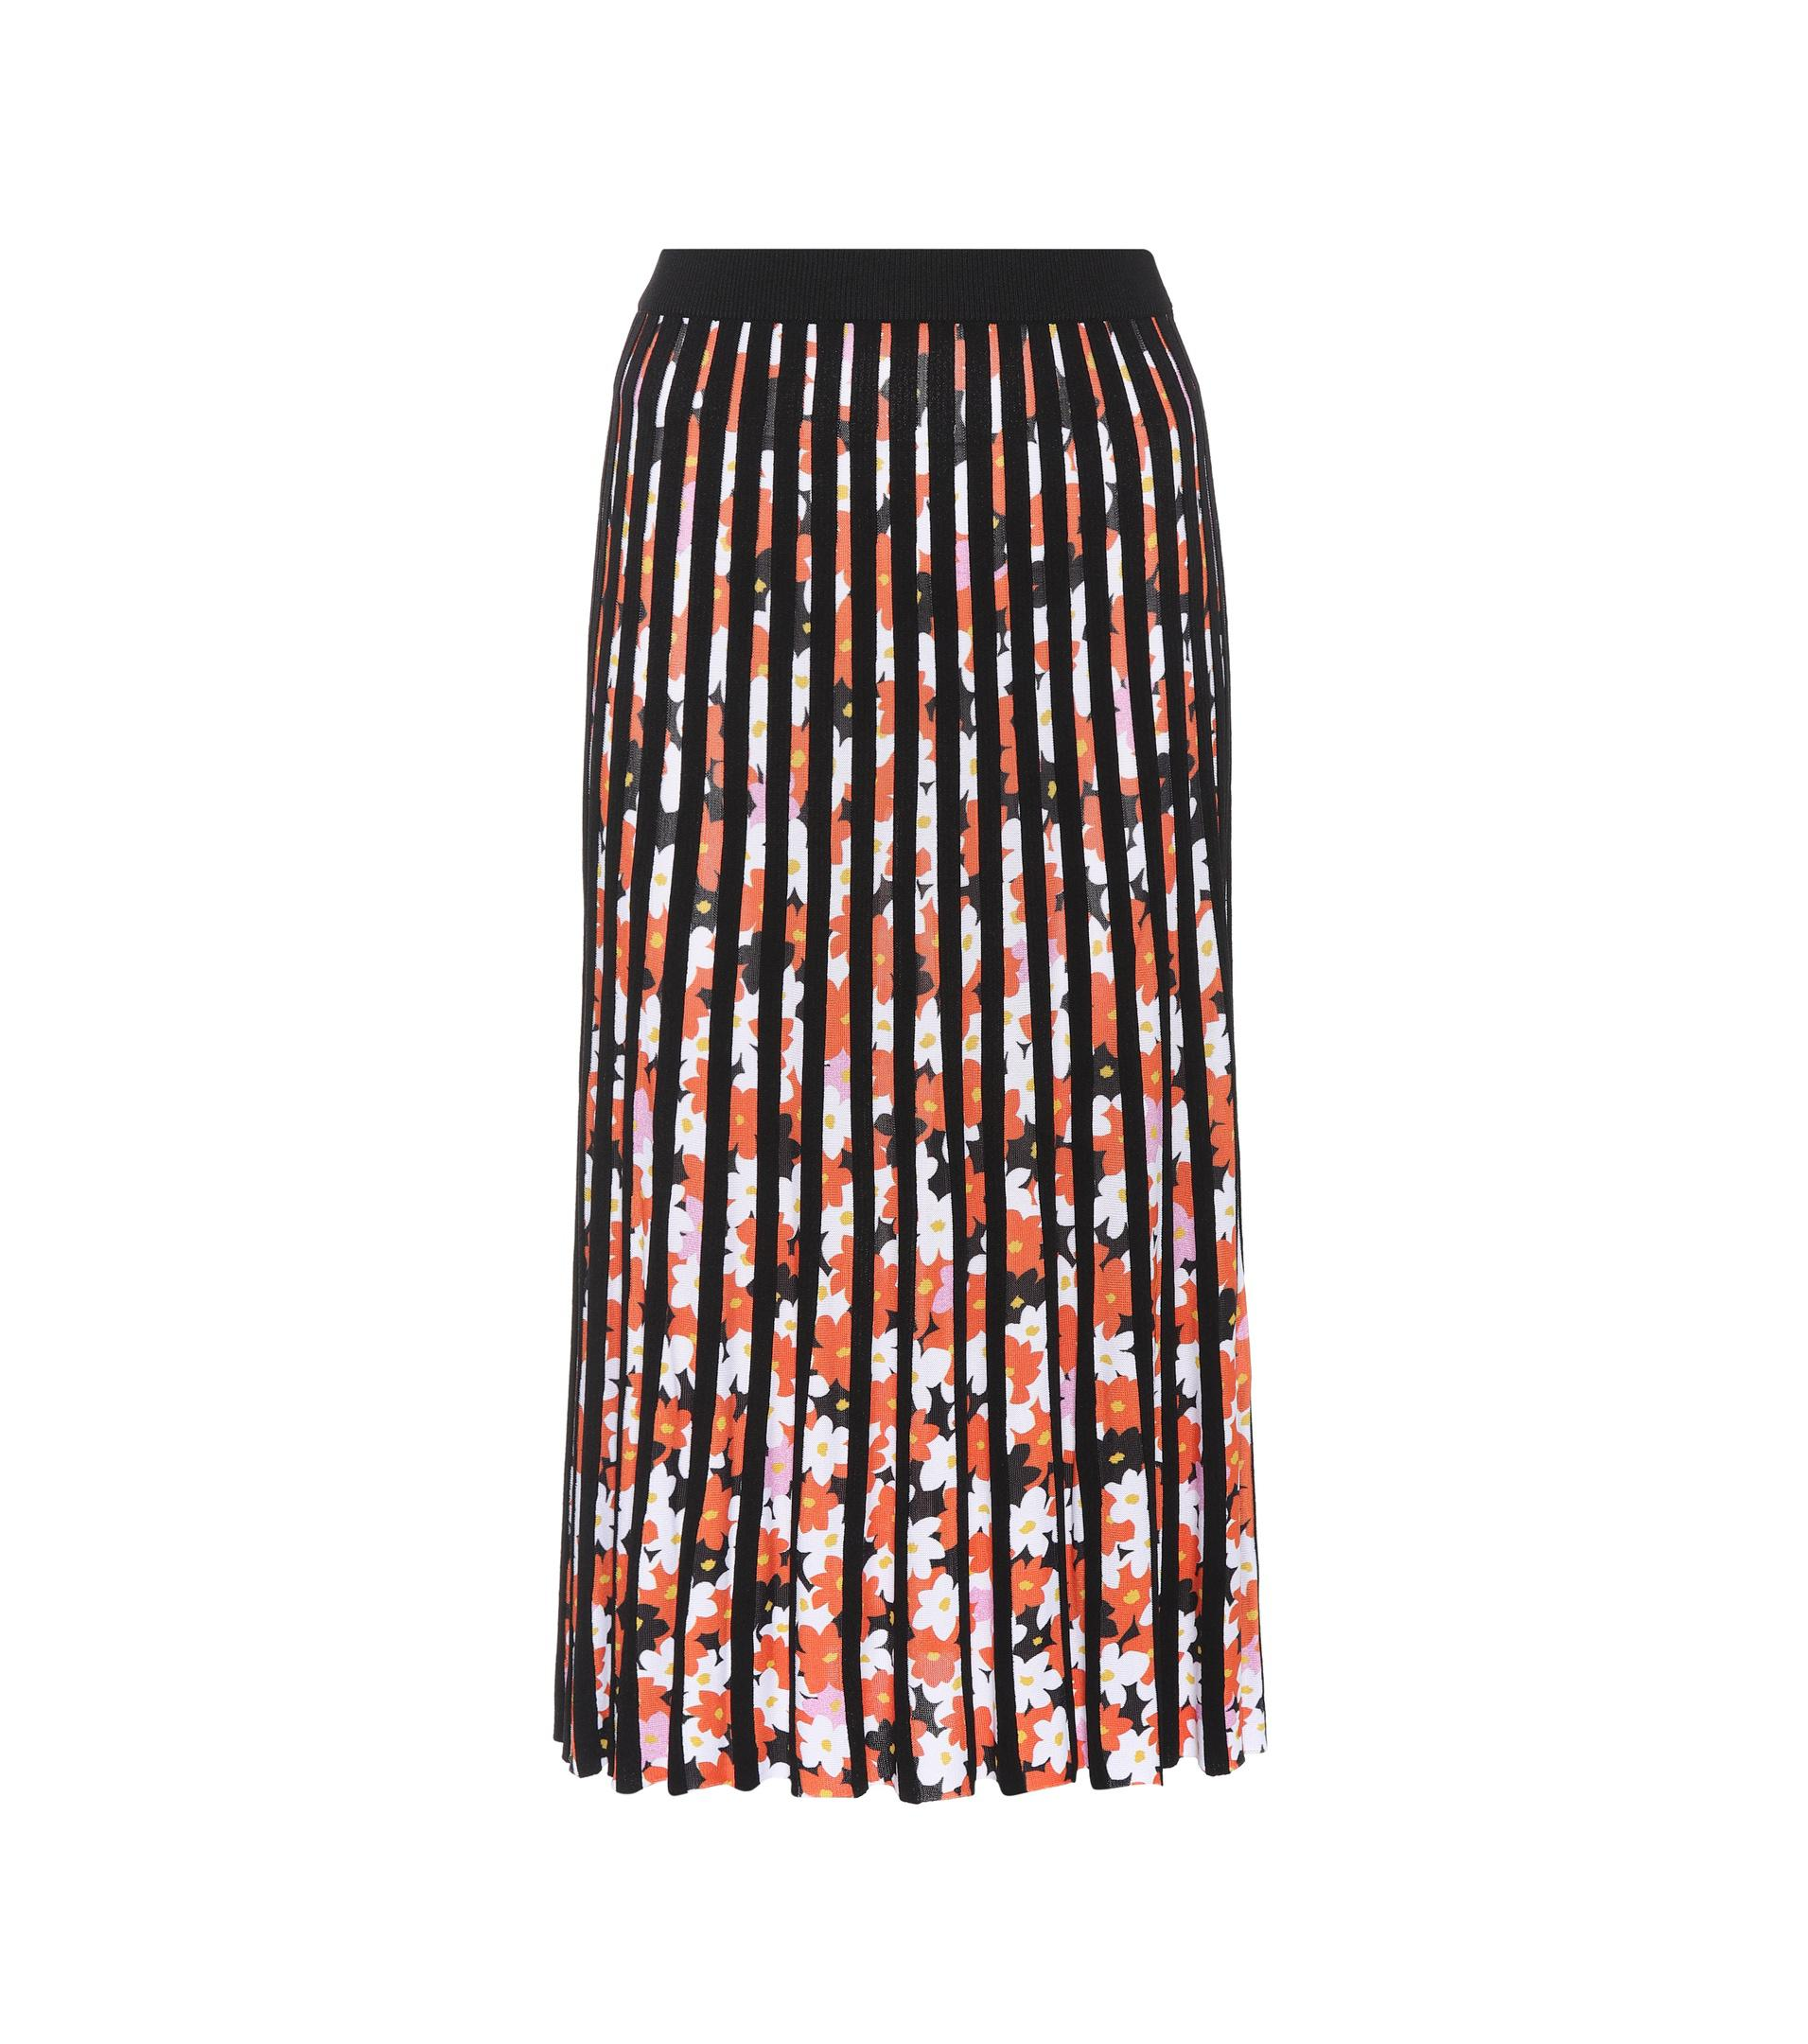 359ac0d36 Gallery. Previously sold at: Mytheresa · Women's Midi Skirts Women's Pleated  ...